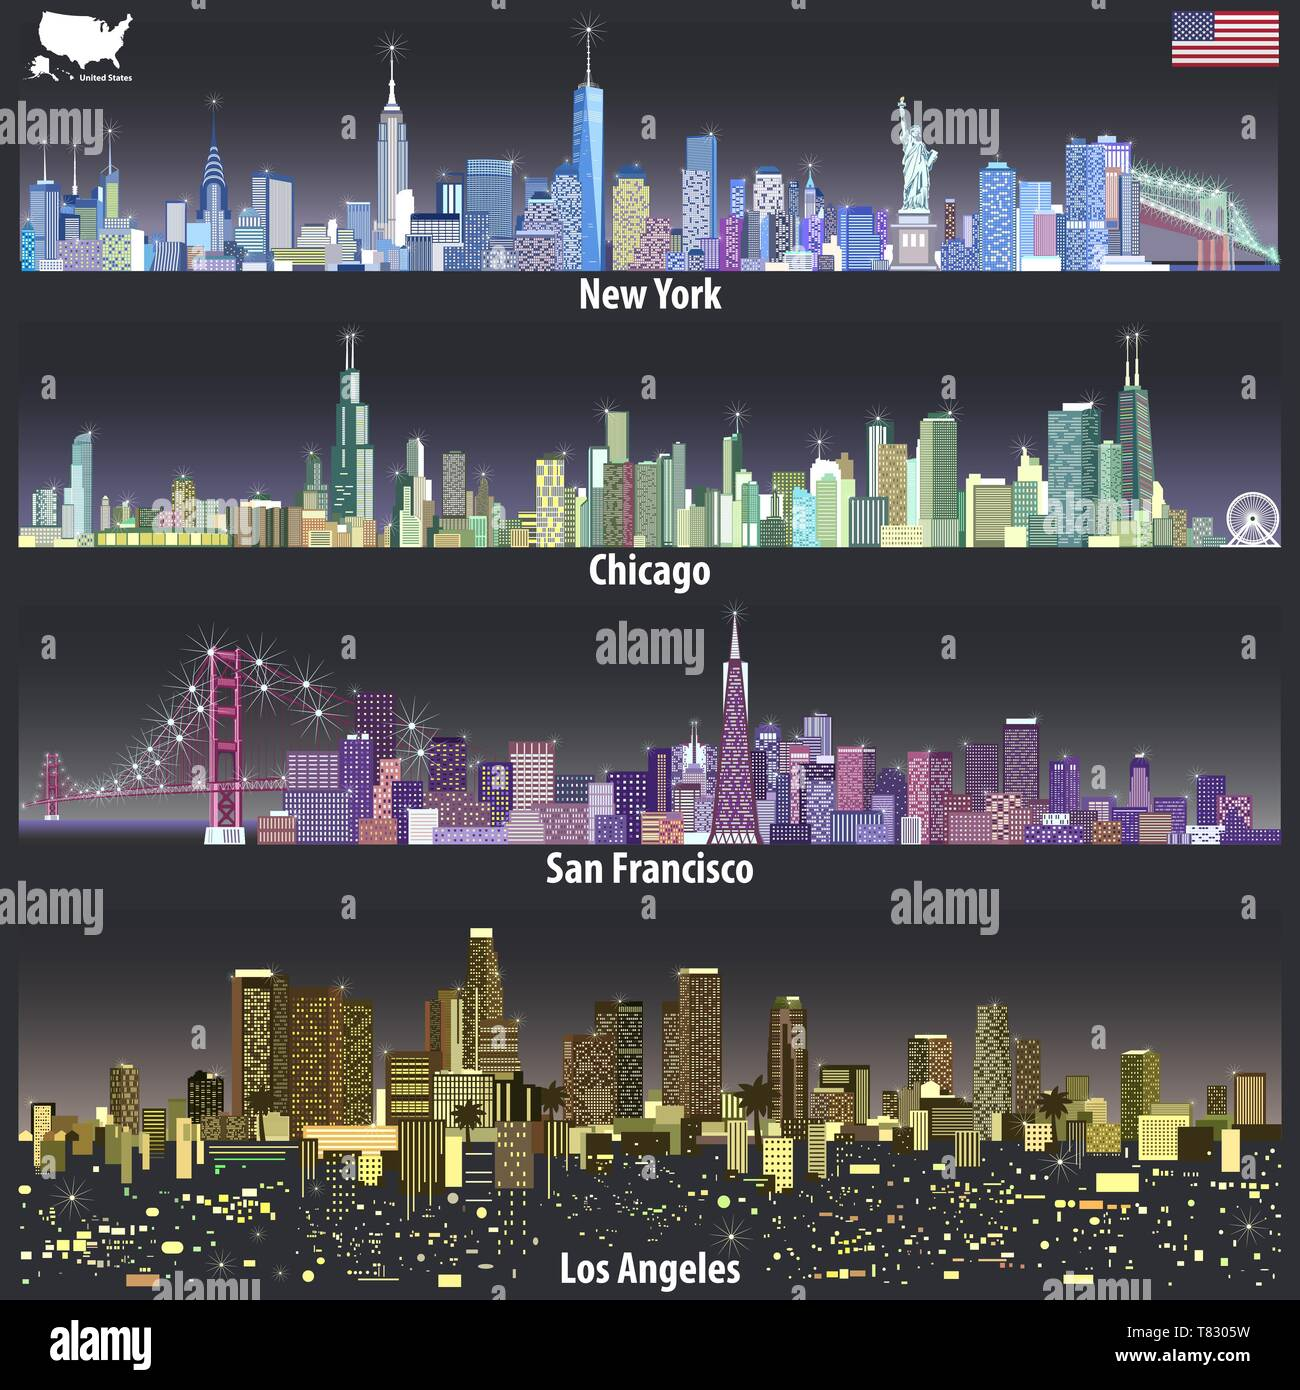 vector illustrations of United States city skylines - Stock Vector